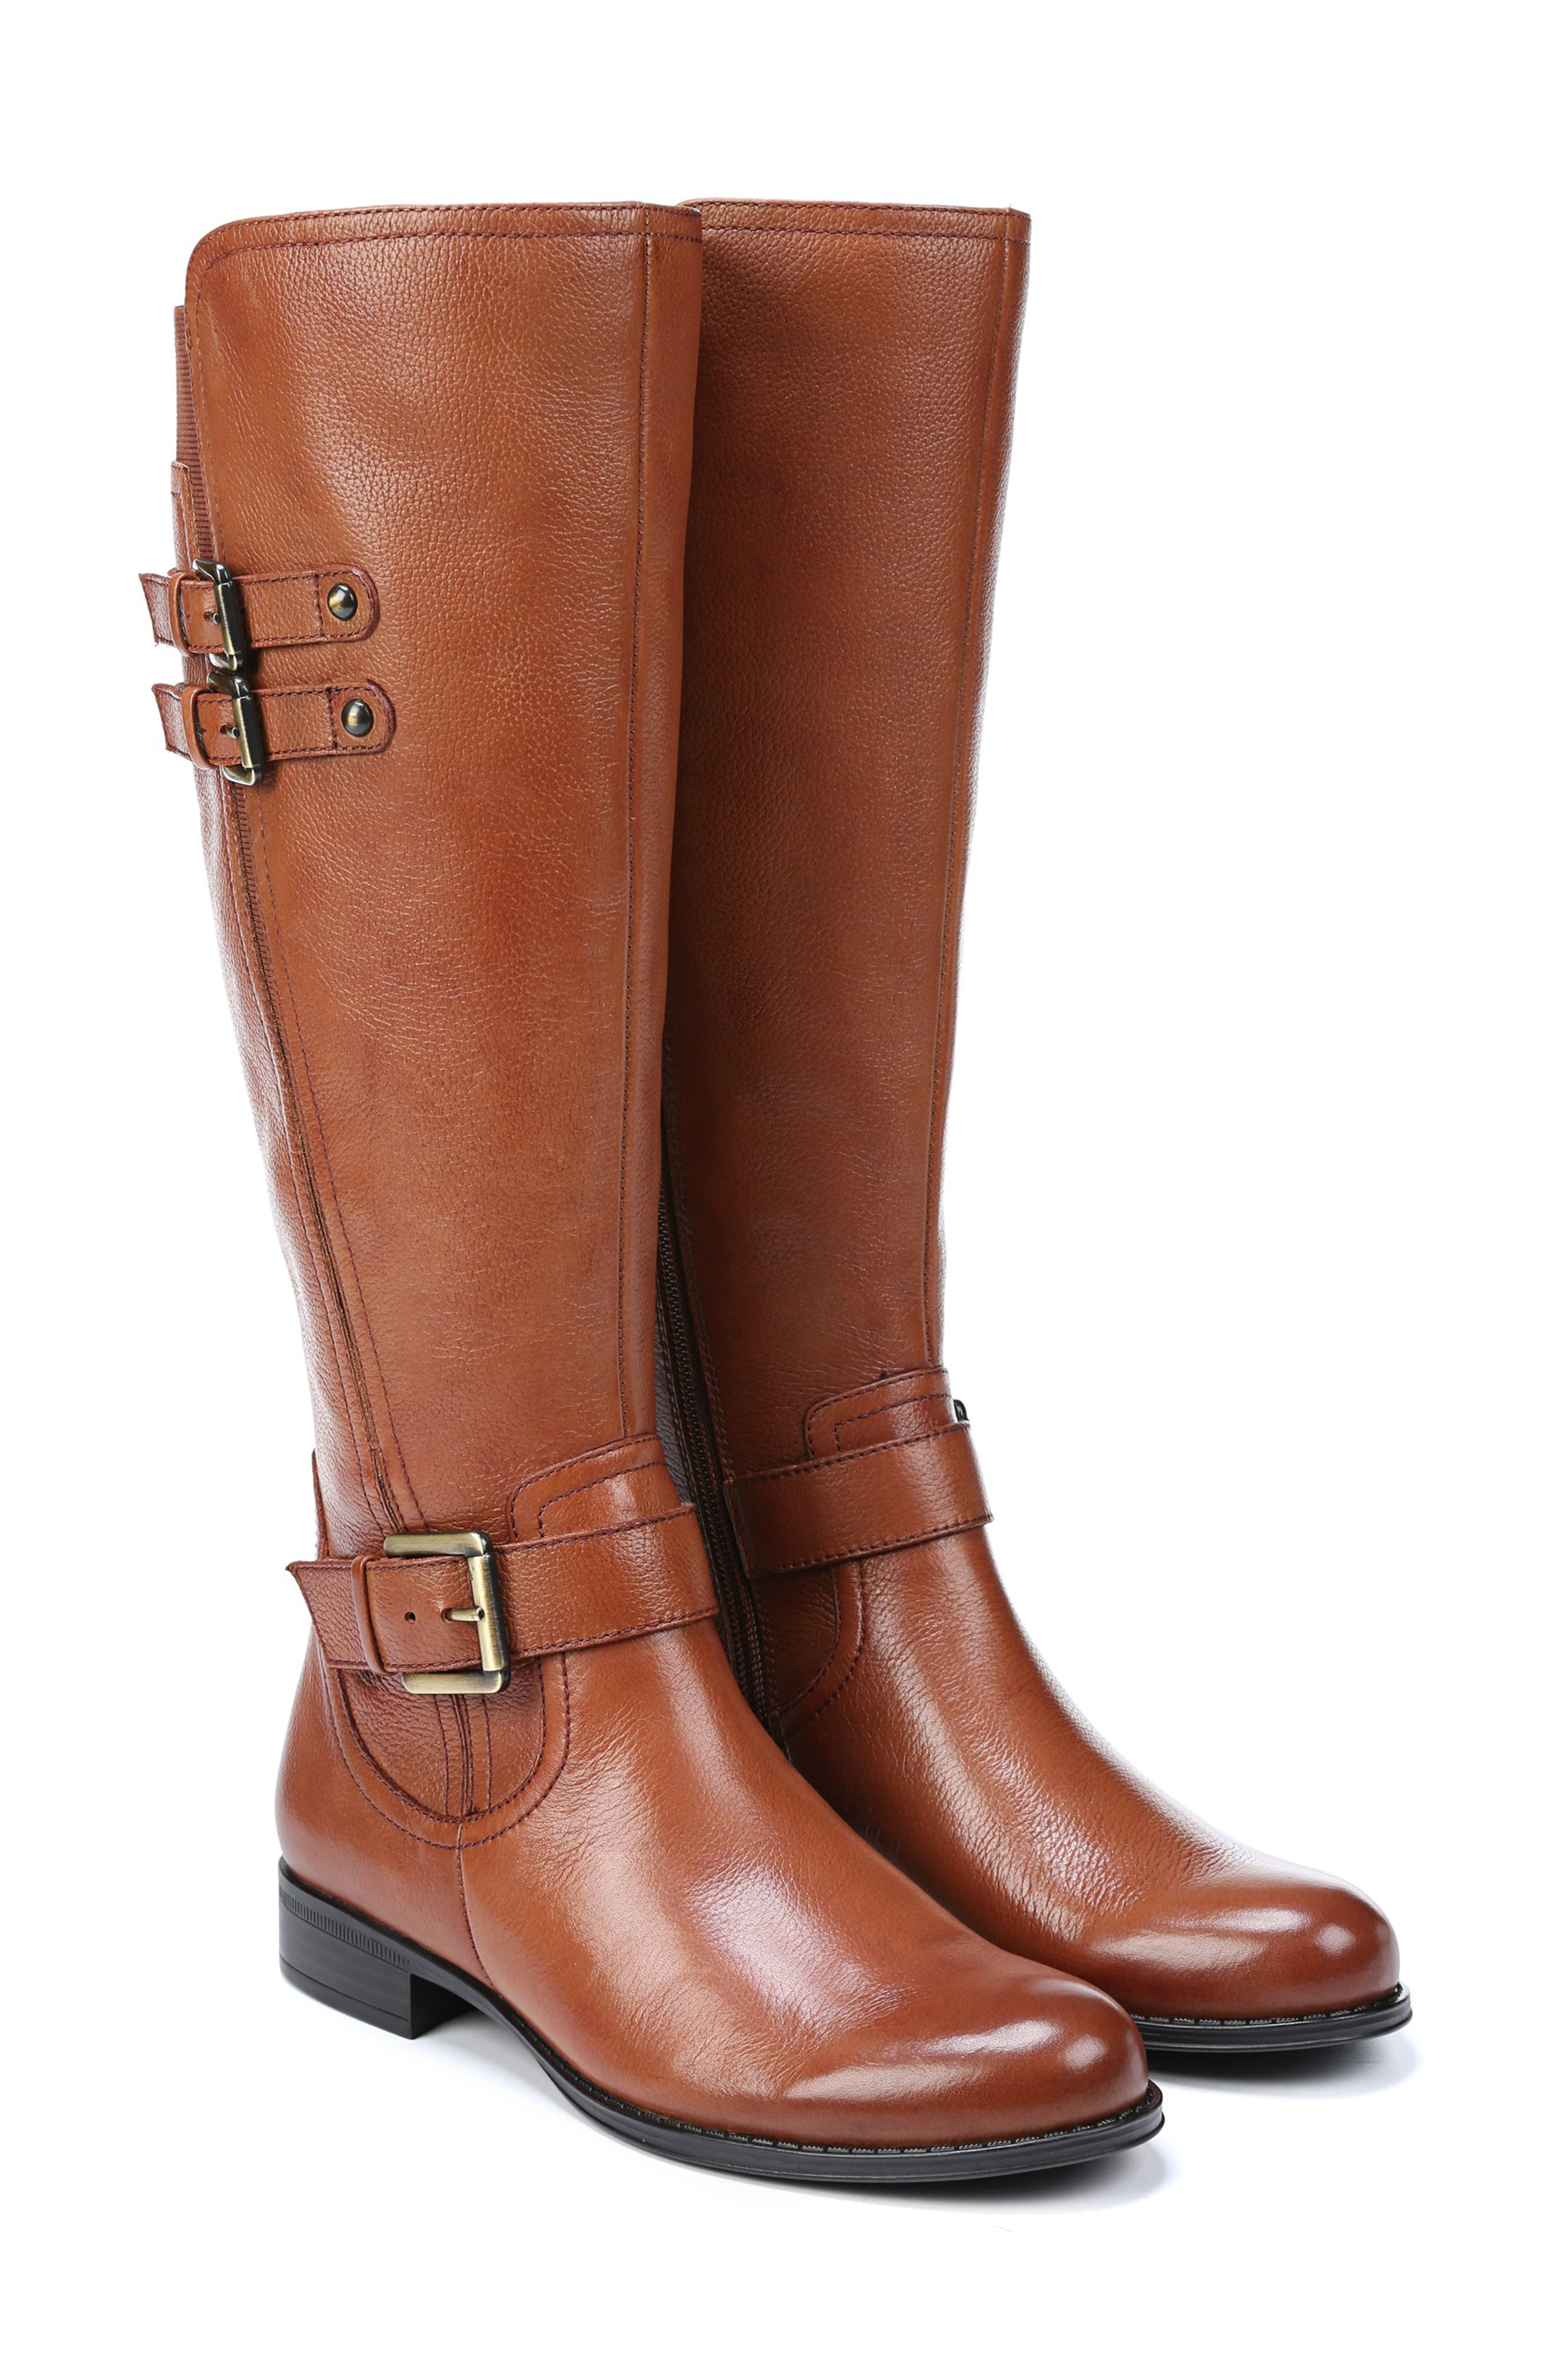 NATURALIZER, Jessie Knee High Riding Boot, Alternate thumbnail 9, color, BANANA BREAD LEATHER